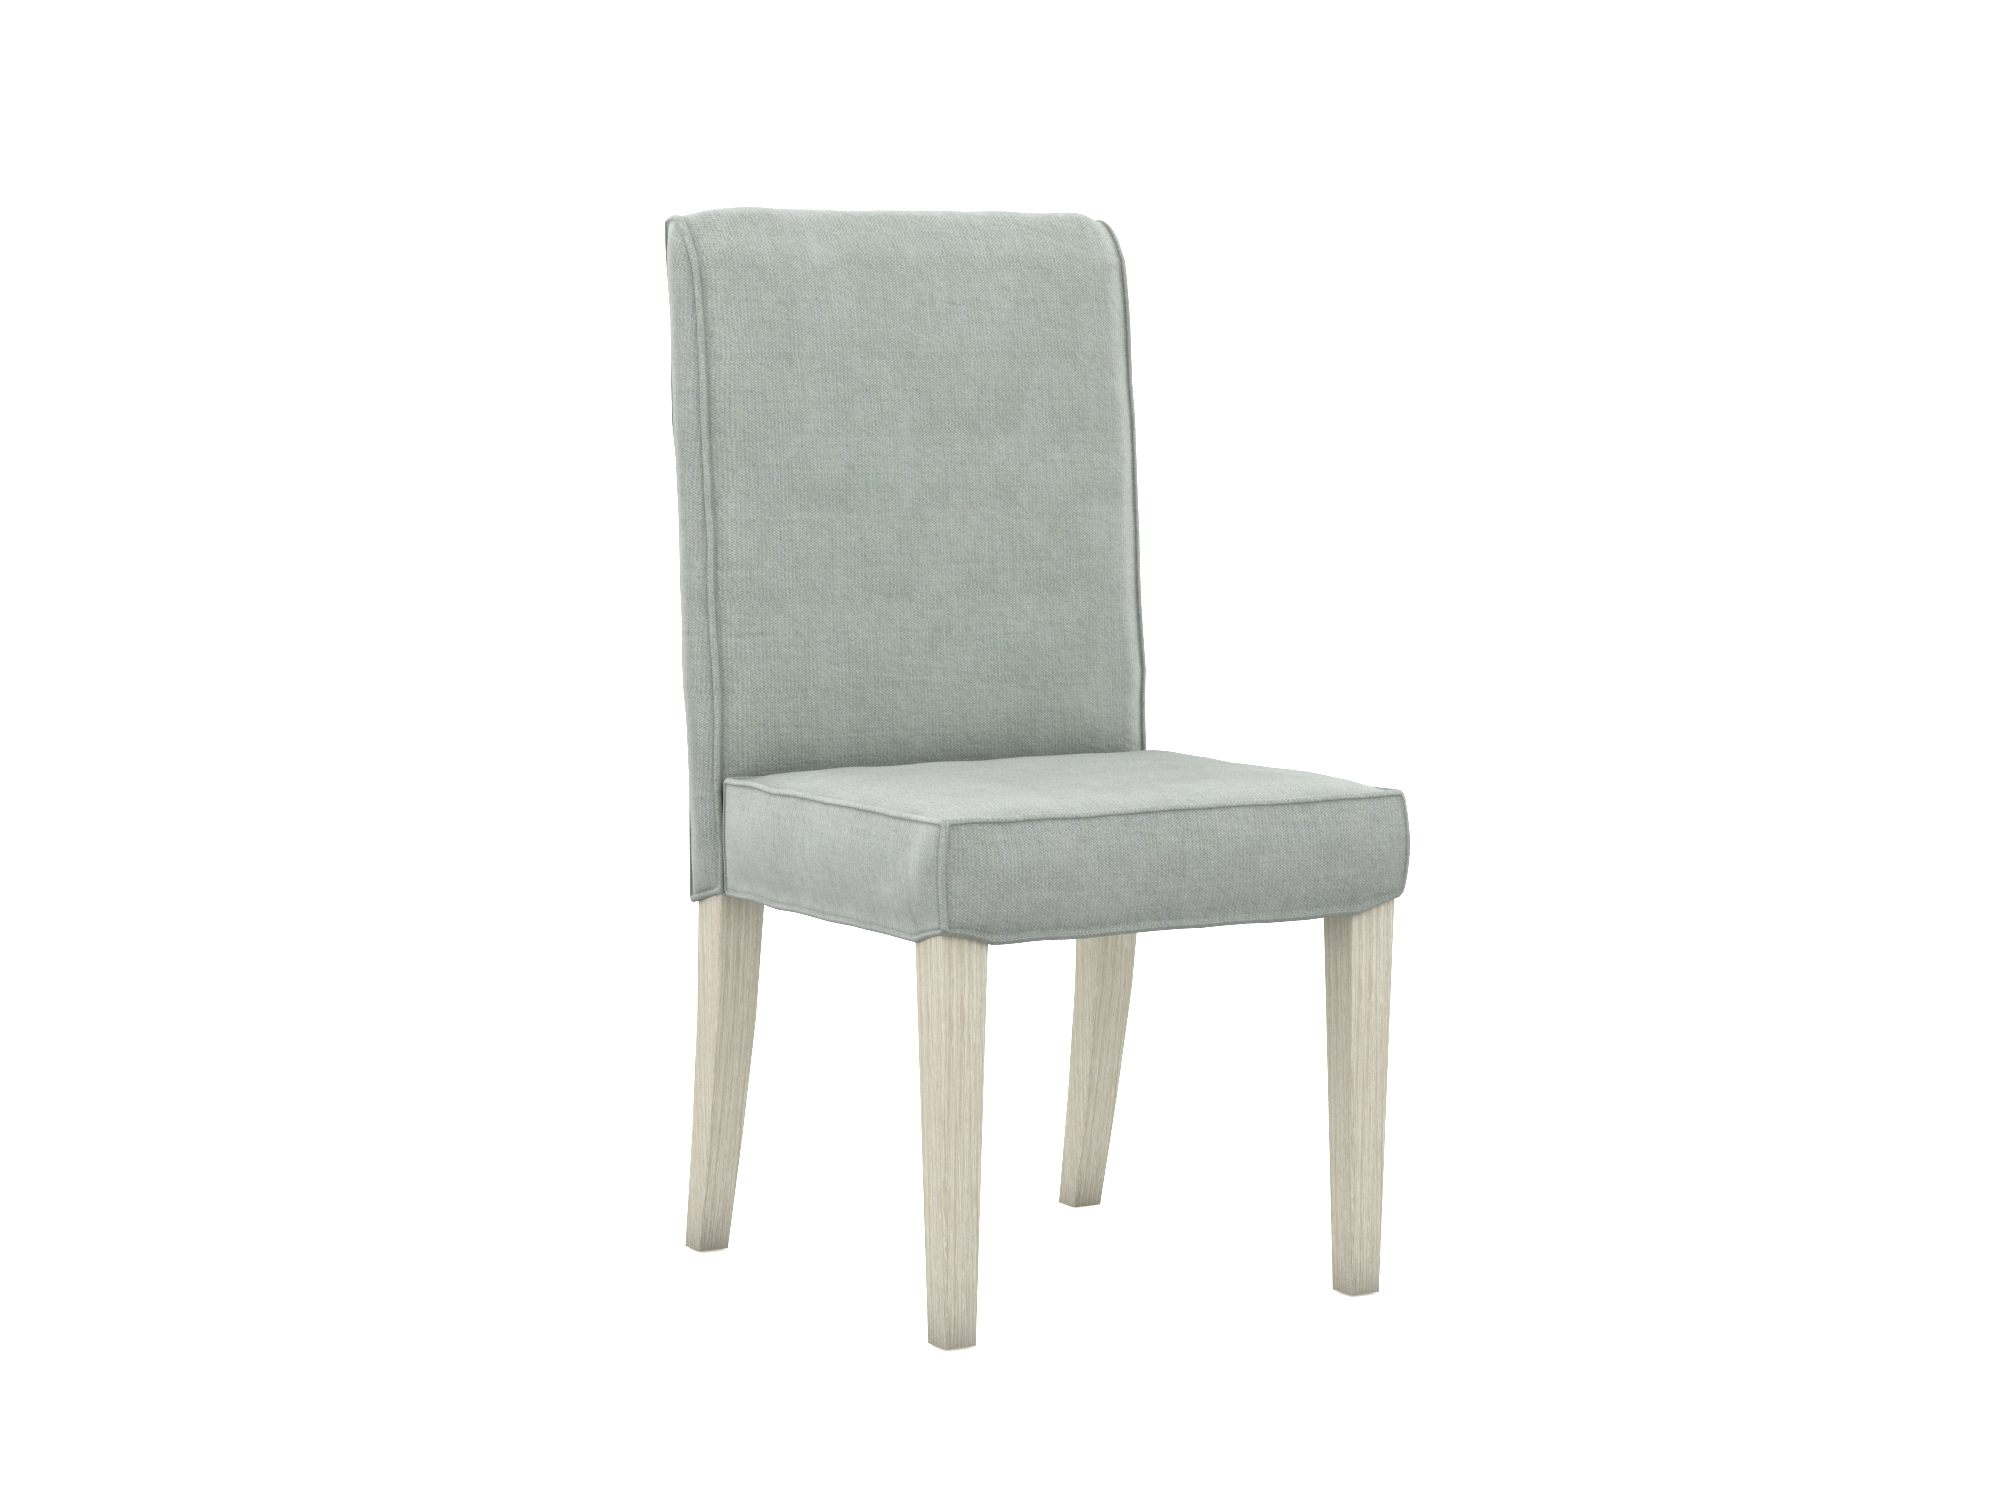 Henriksdal chair cover (without armrest)